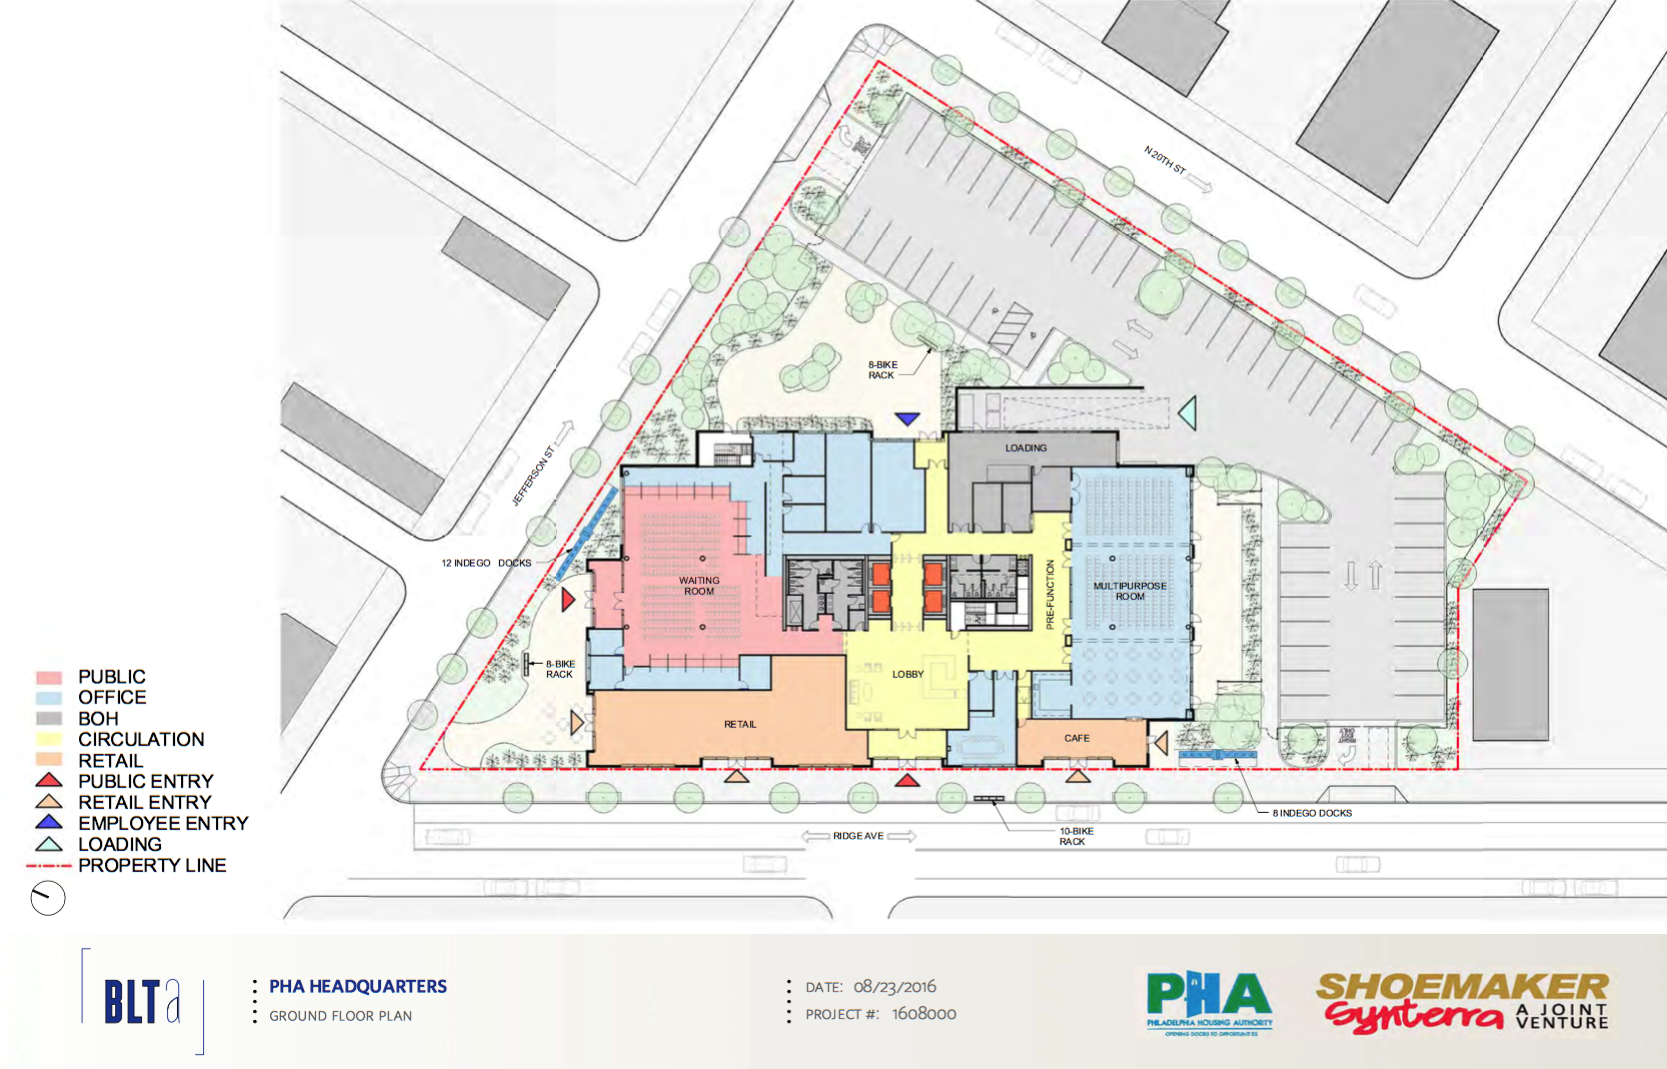 PHA Headquarters: Ground floor and site plan | BLTa, CDR presentation, Sept. 2016